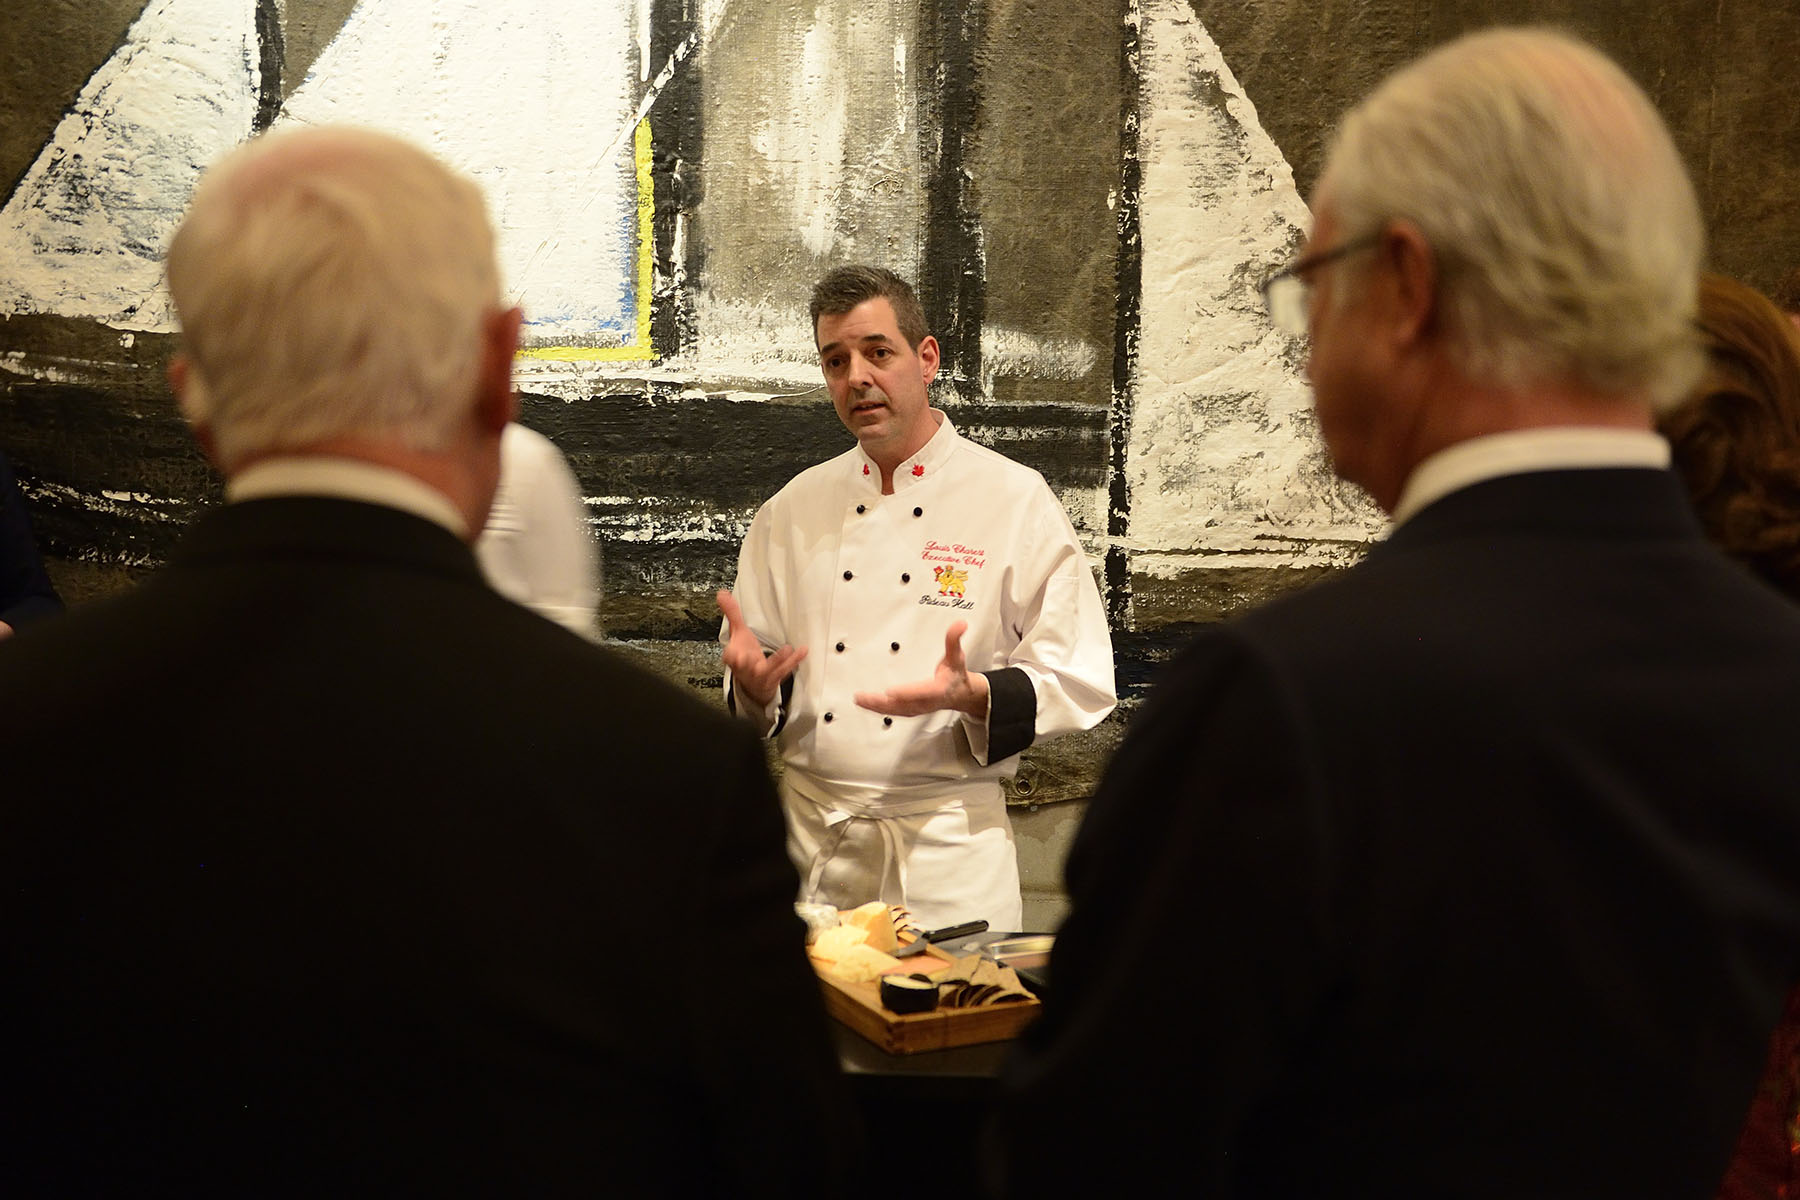 Rideau Hall's Executive Chef Mr. Louis Charest explained that all the ingredients used are available in Canada and Sweden.